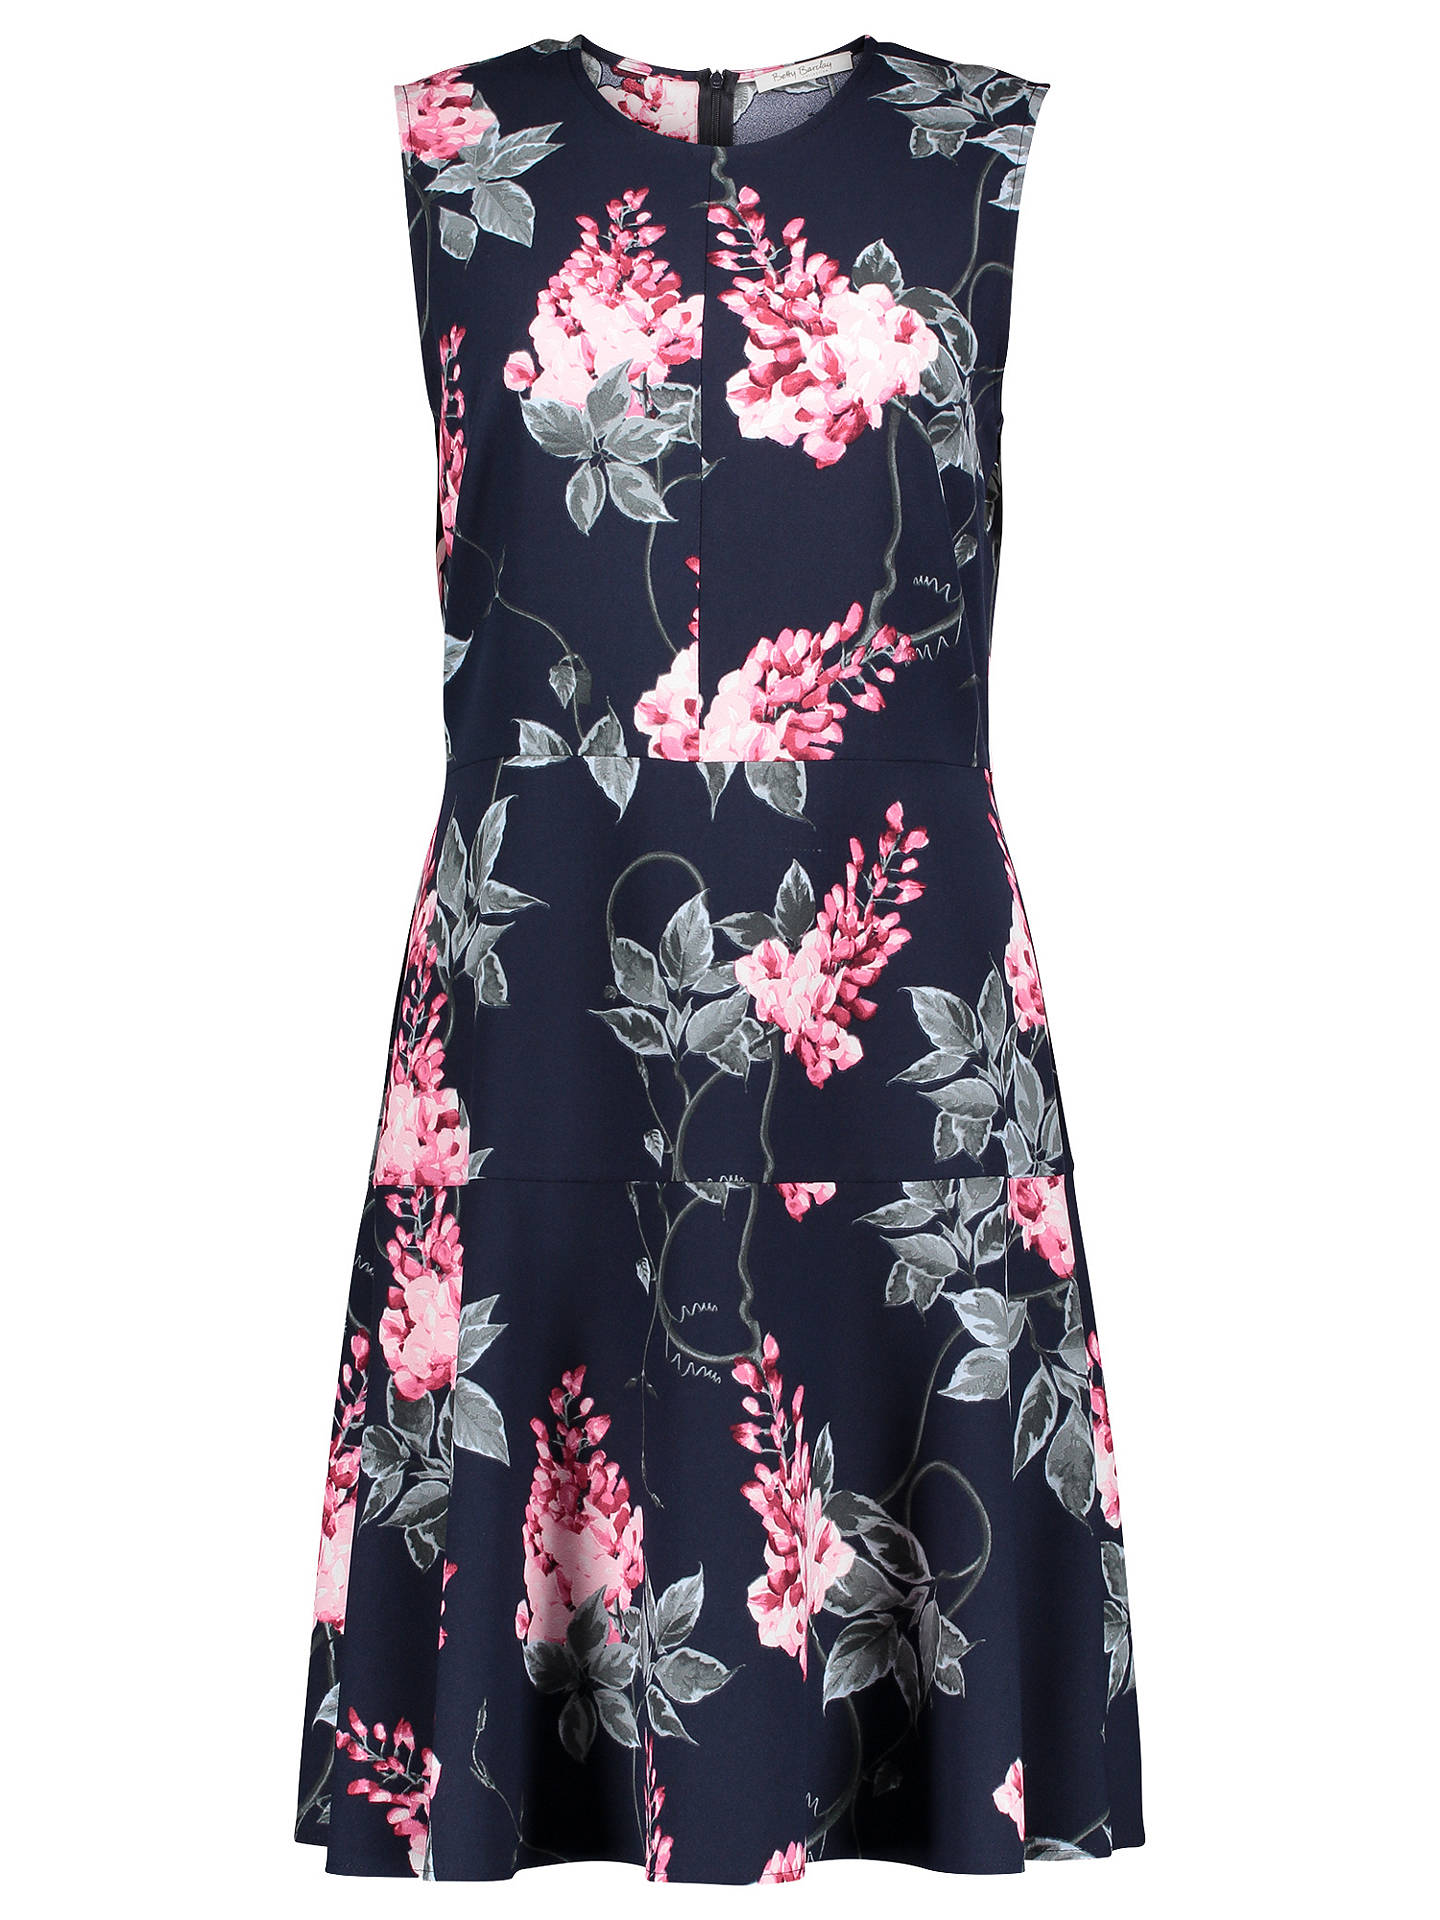 Buy Betty Barclay Floral Jersey Dress, Dark Blue, 10 Online at johnlewis.com